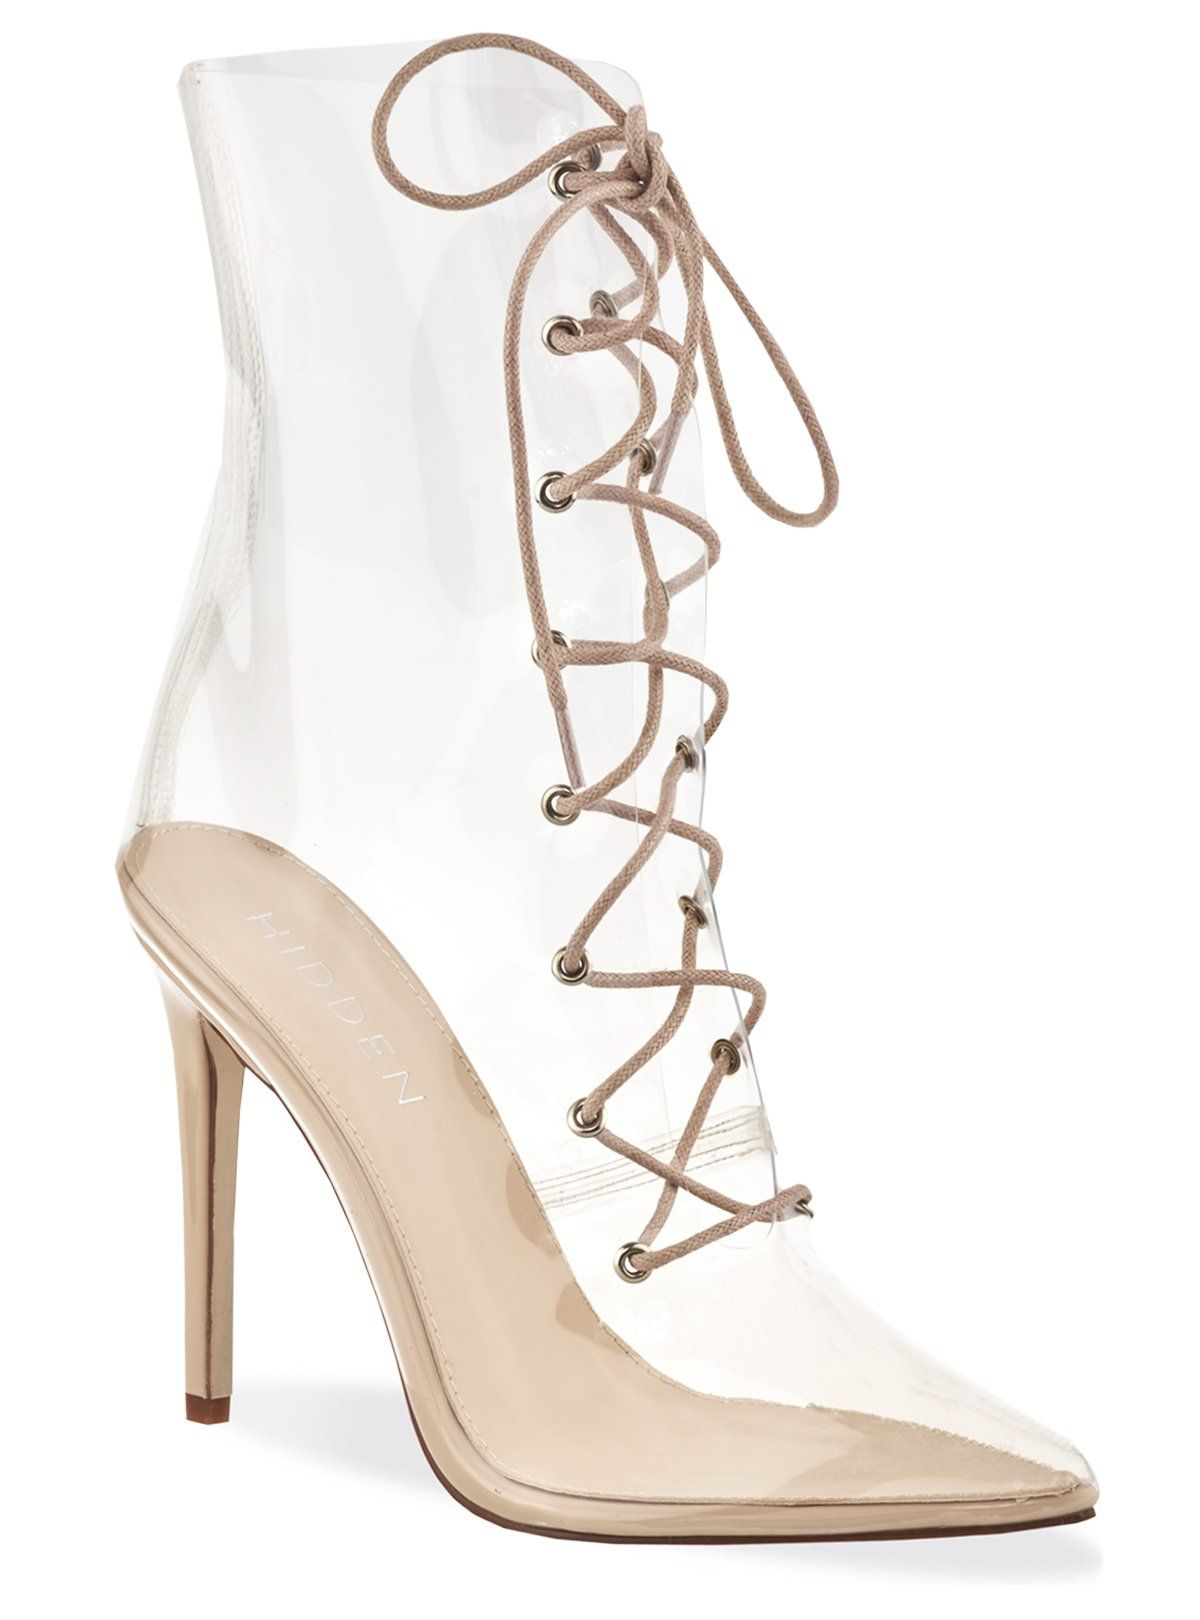 a7f8822d60 Clear Perspex & Patent Nude Pointed Stiletto Boots | PERSPEX ...